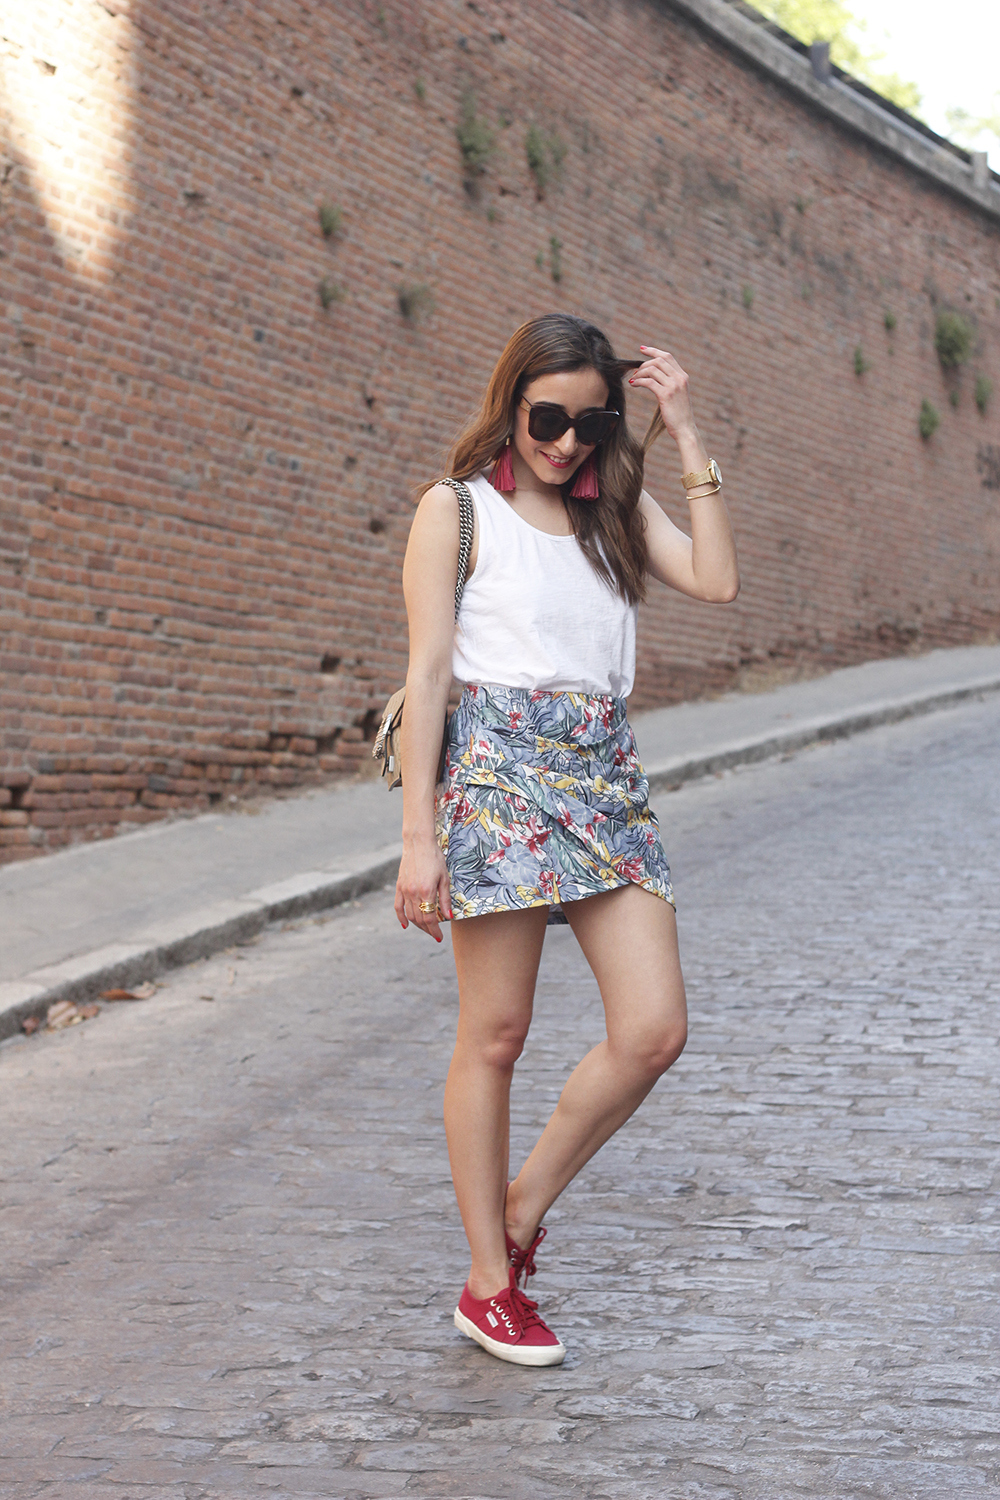 Tropical Skirt gucci bag superga outfit style summer02